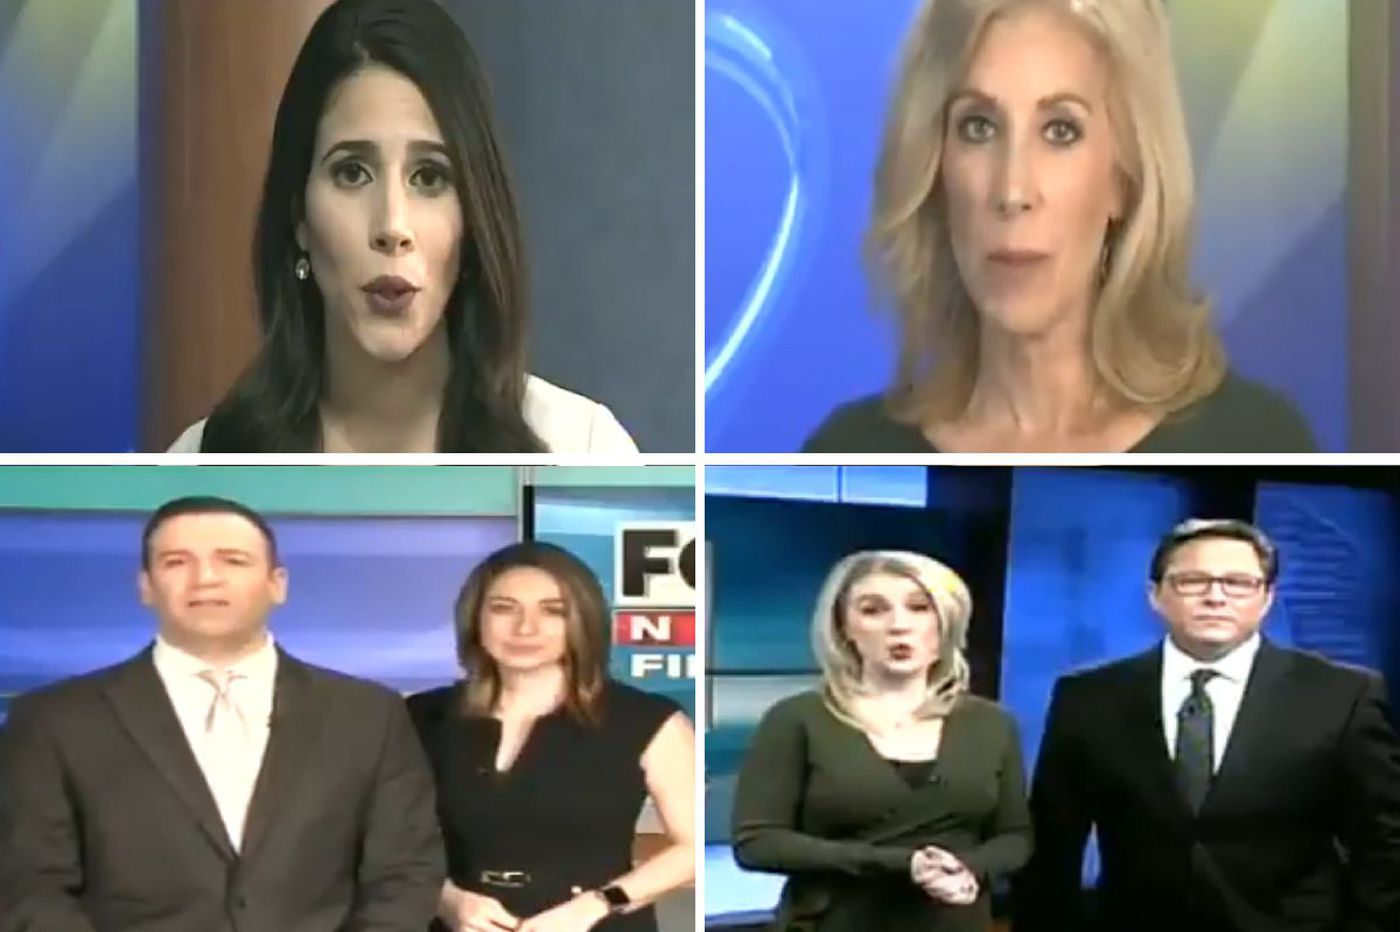 Anchors at Sinclair stations in Pa. forced to read same script about 'one-sided news'